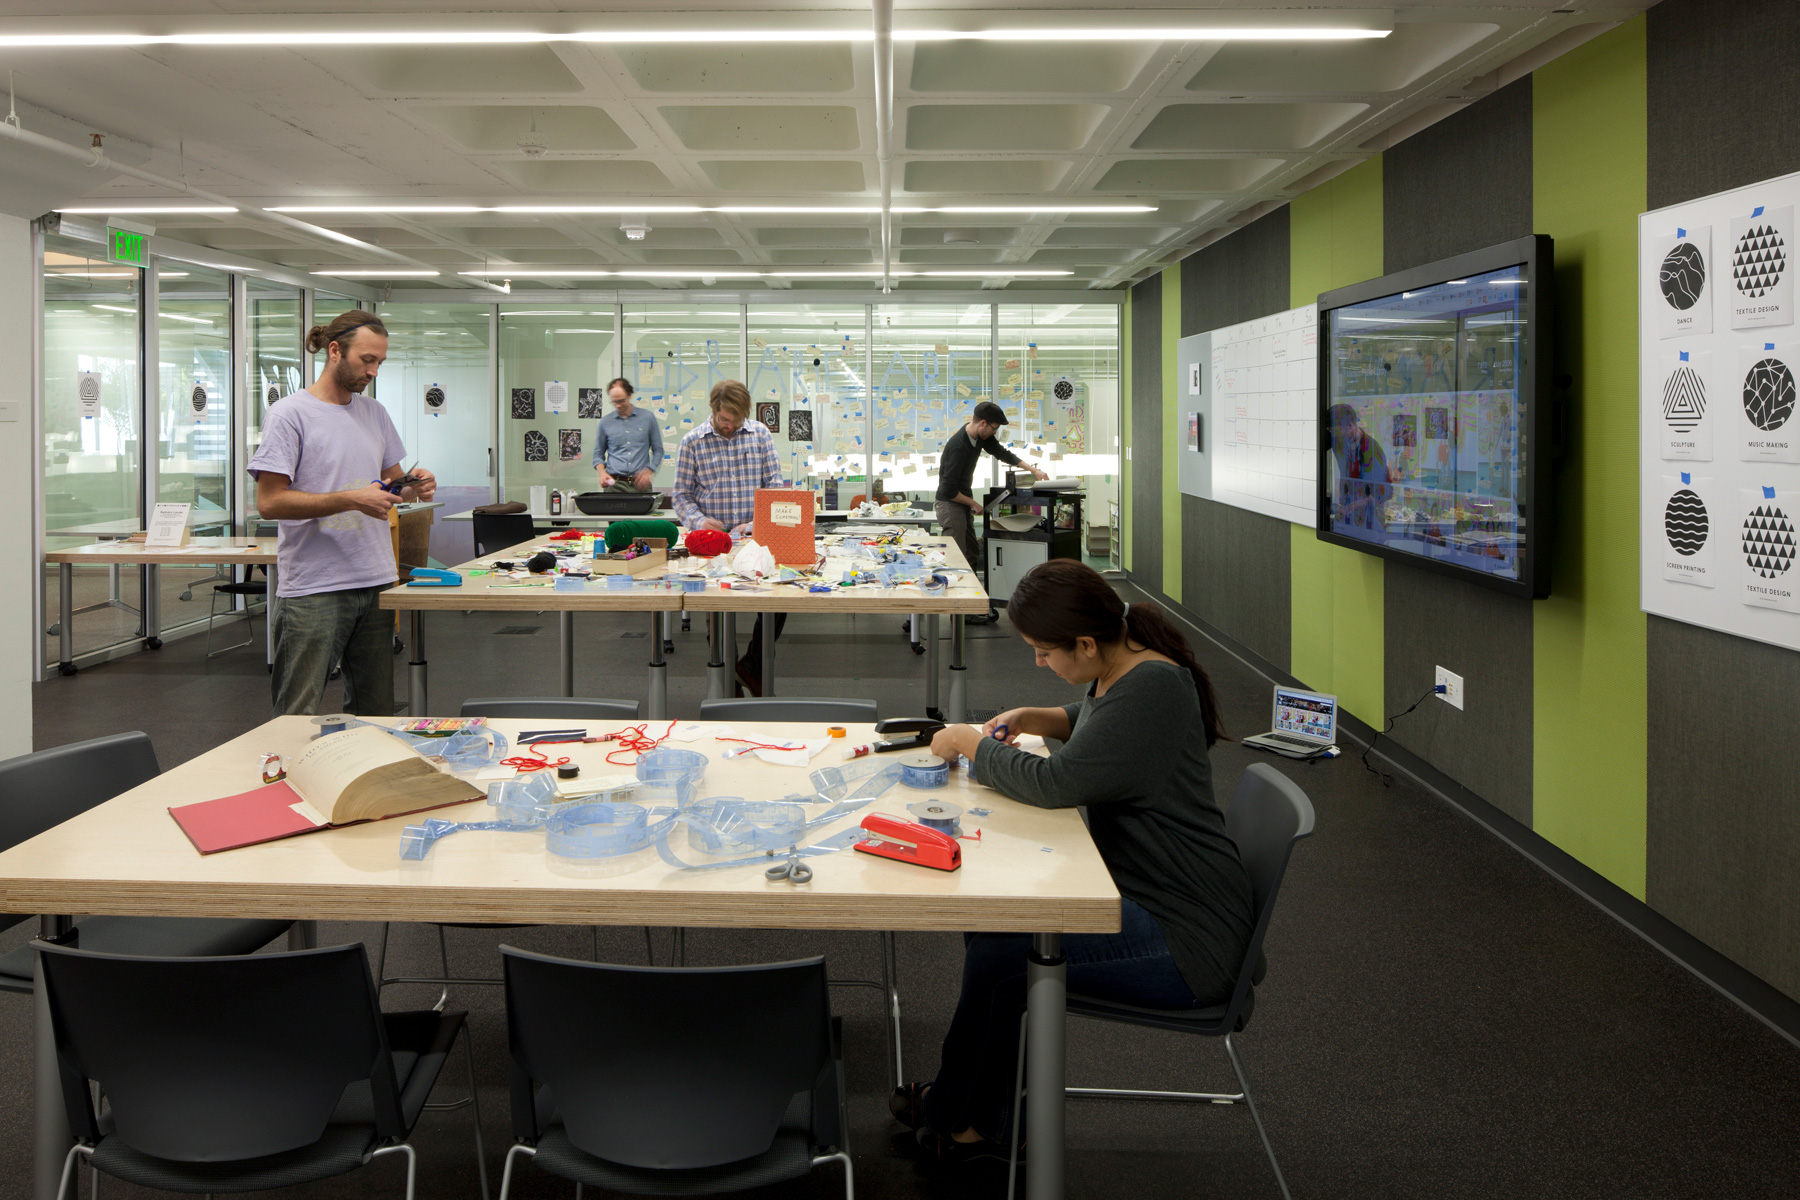 Key Features Of Collaborative Spaces